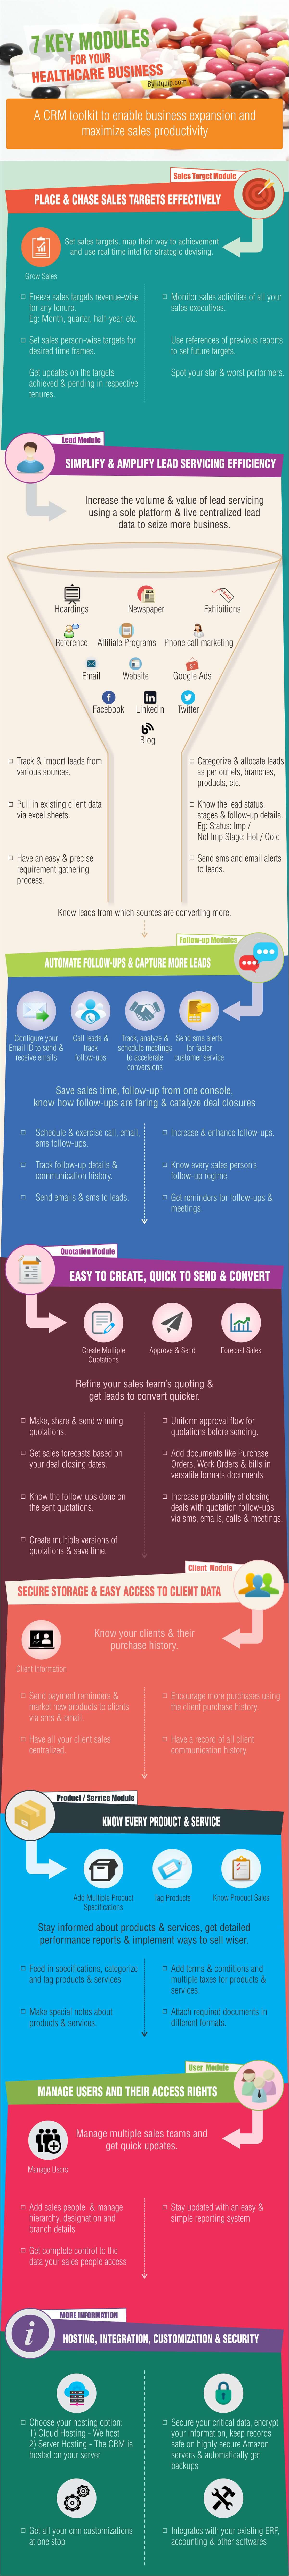 infographic on healthcare crm features in a business flow